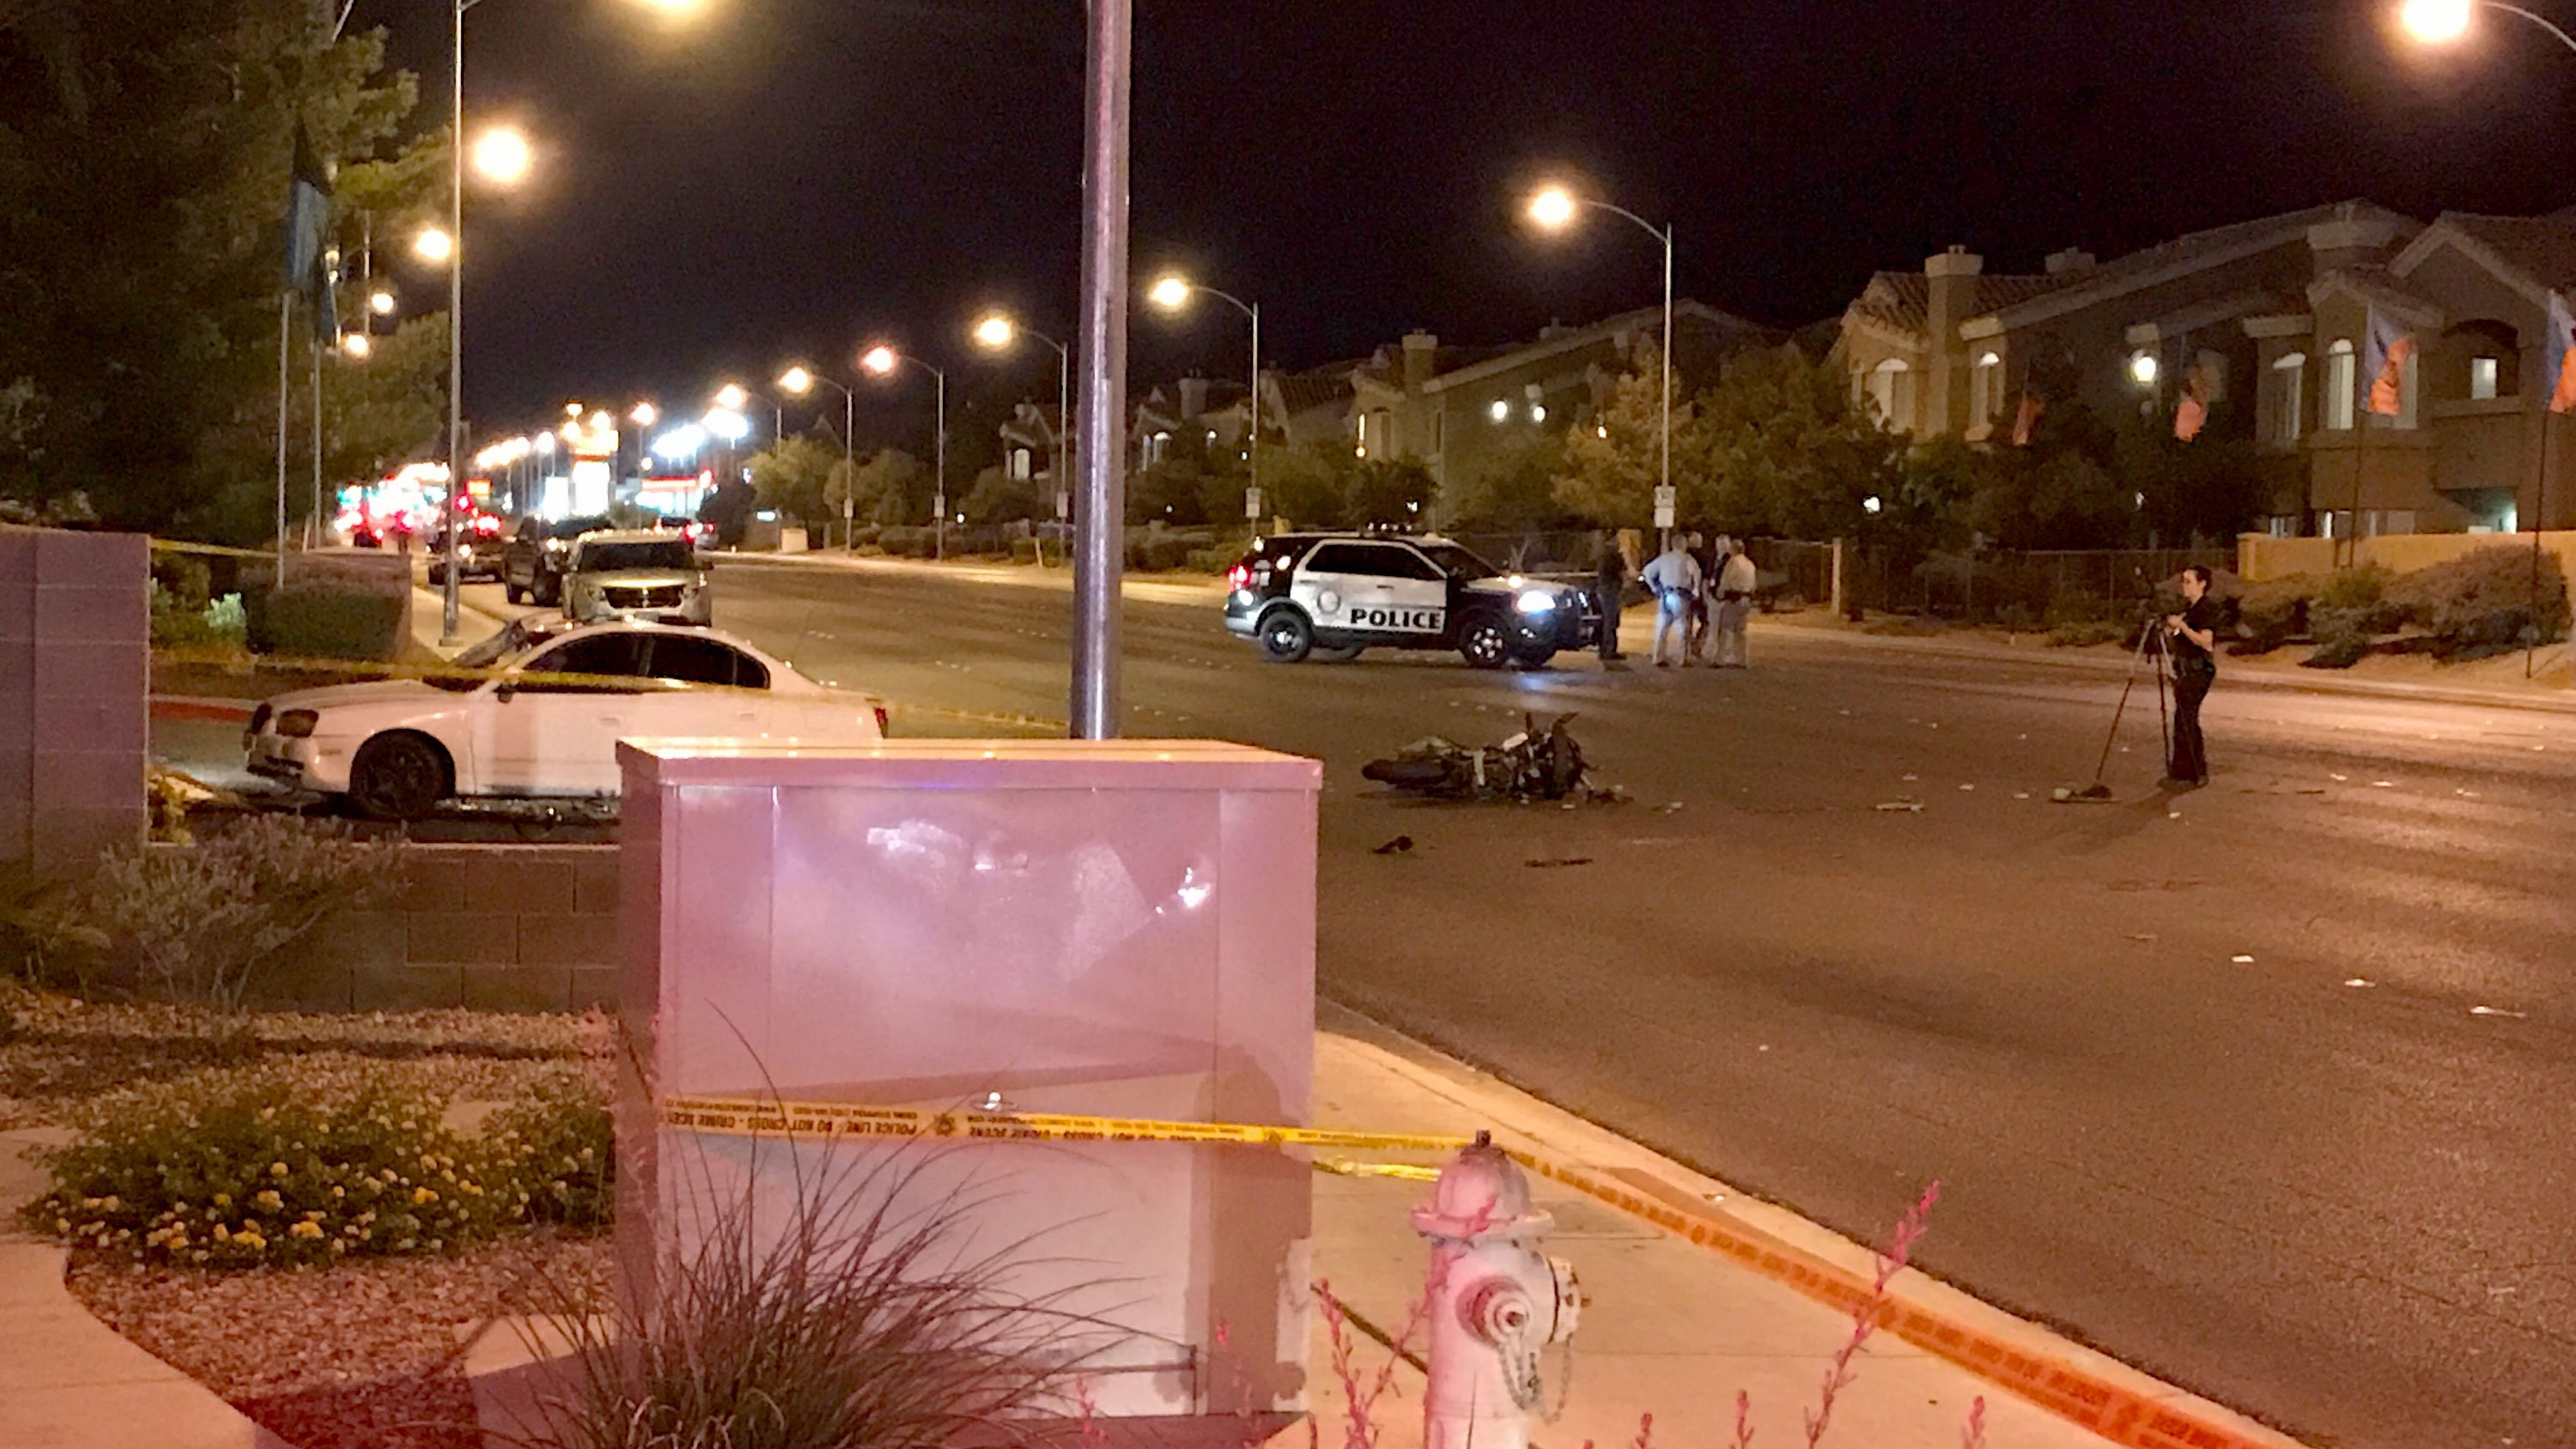 Las Vegas Metro police said they are investigating a fatal crash on June 23, 2017 at Flamingo Road and El Capitan Way. (Gai Phanalasy/FOX5)